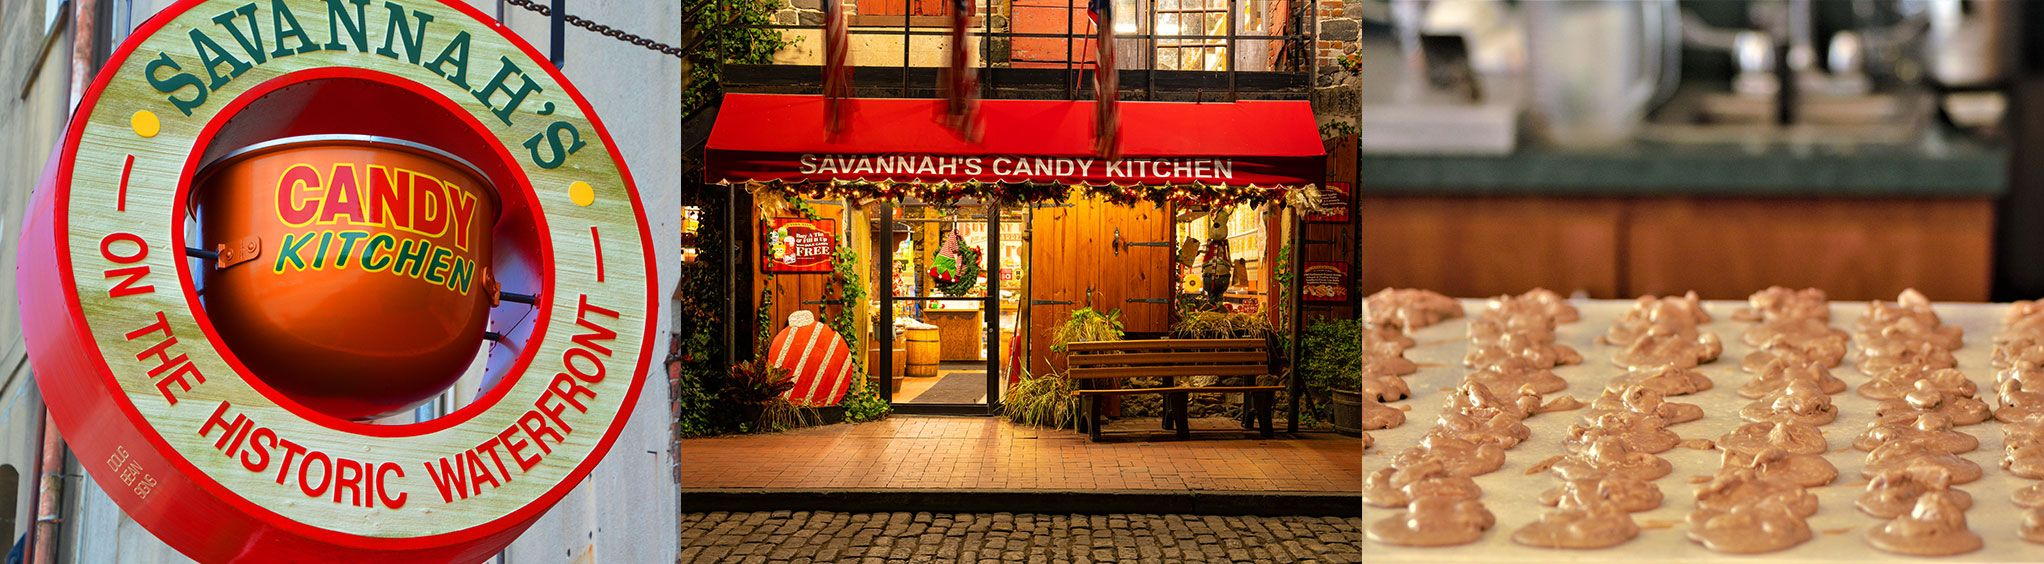 Savannah Candy Kitchen in Savannah, GA